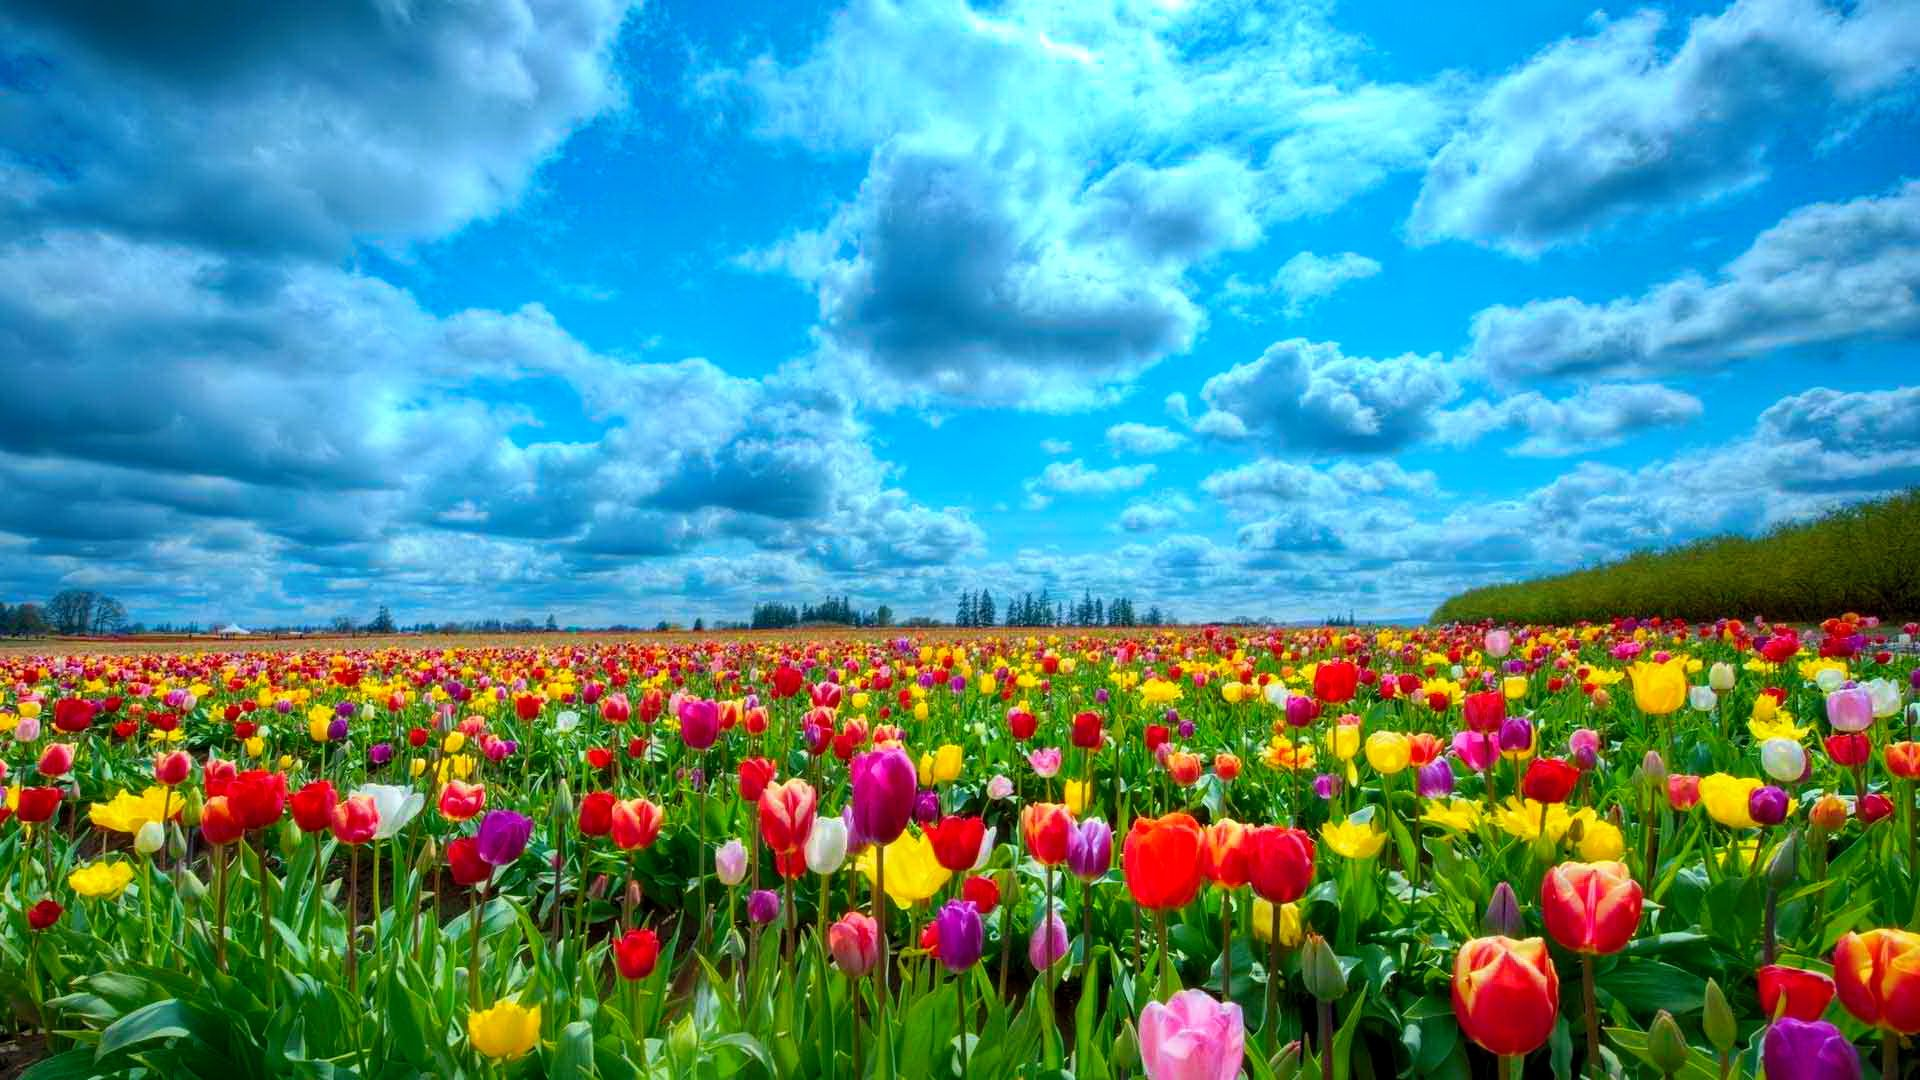 Love This Photo Such Beautiful Colors Of Spring Tulips When We